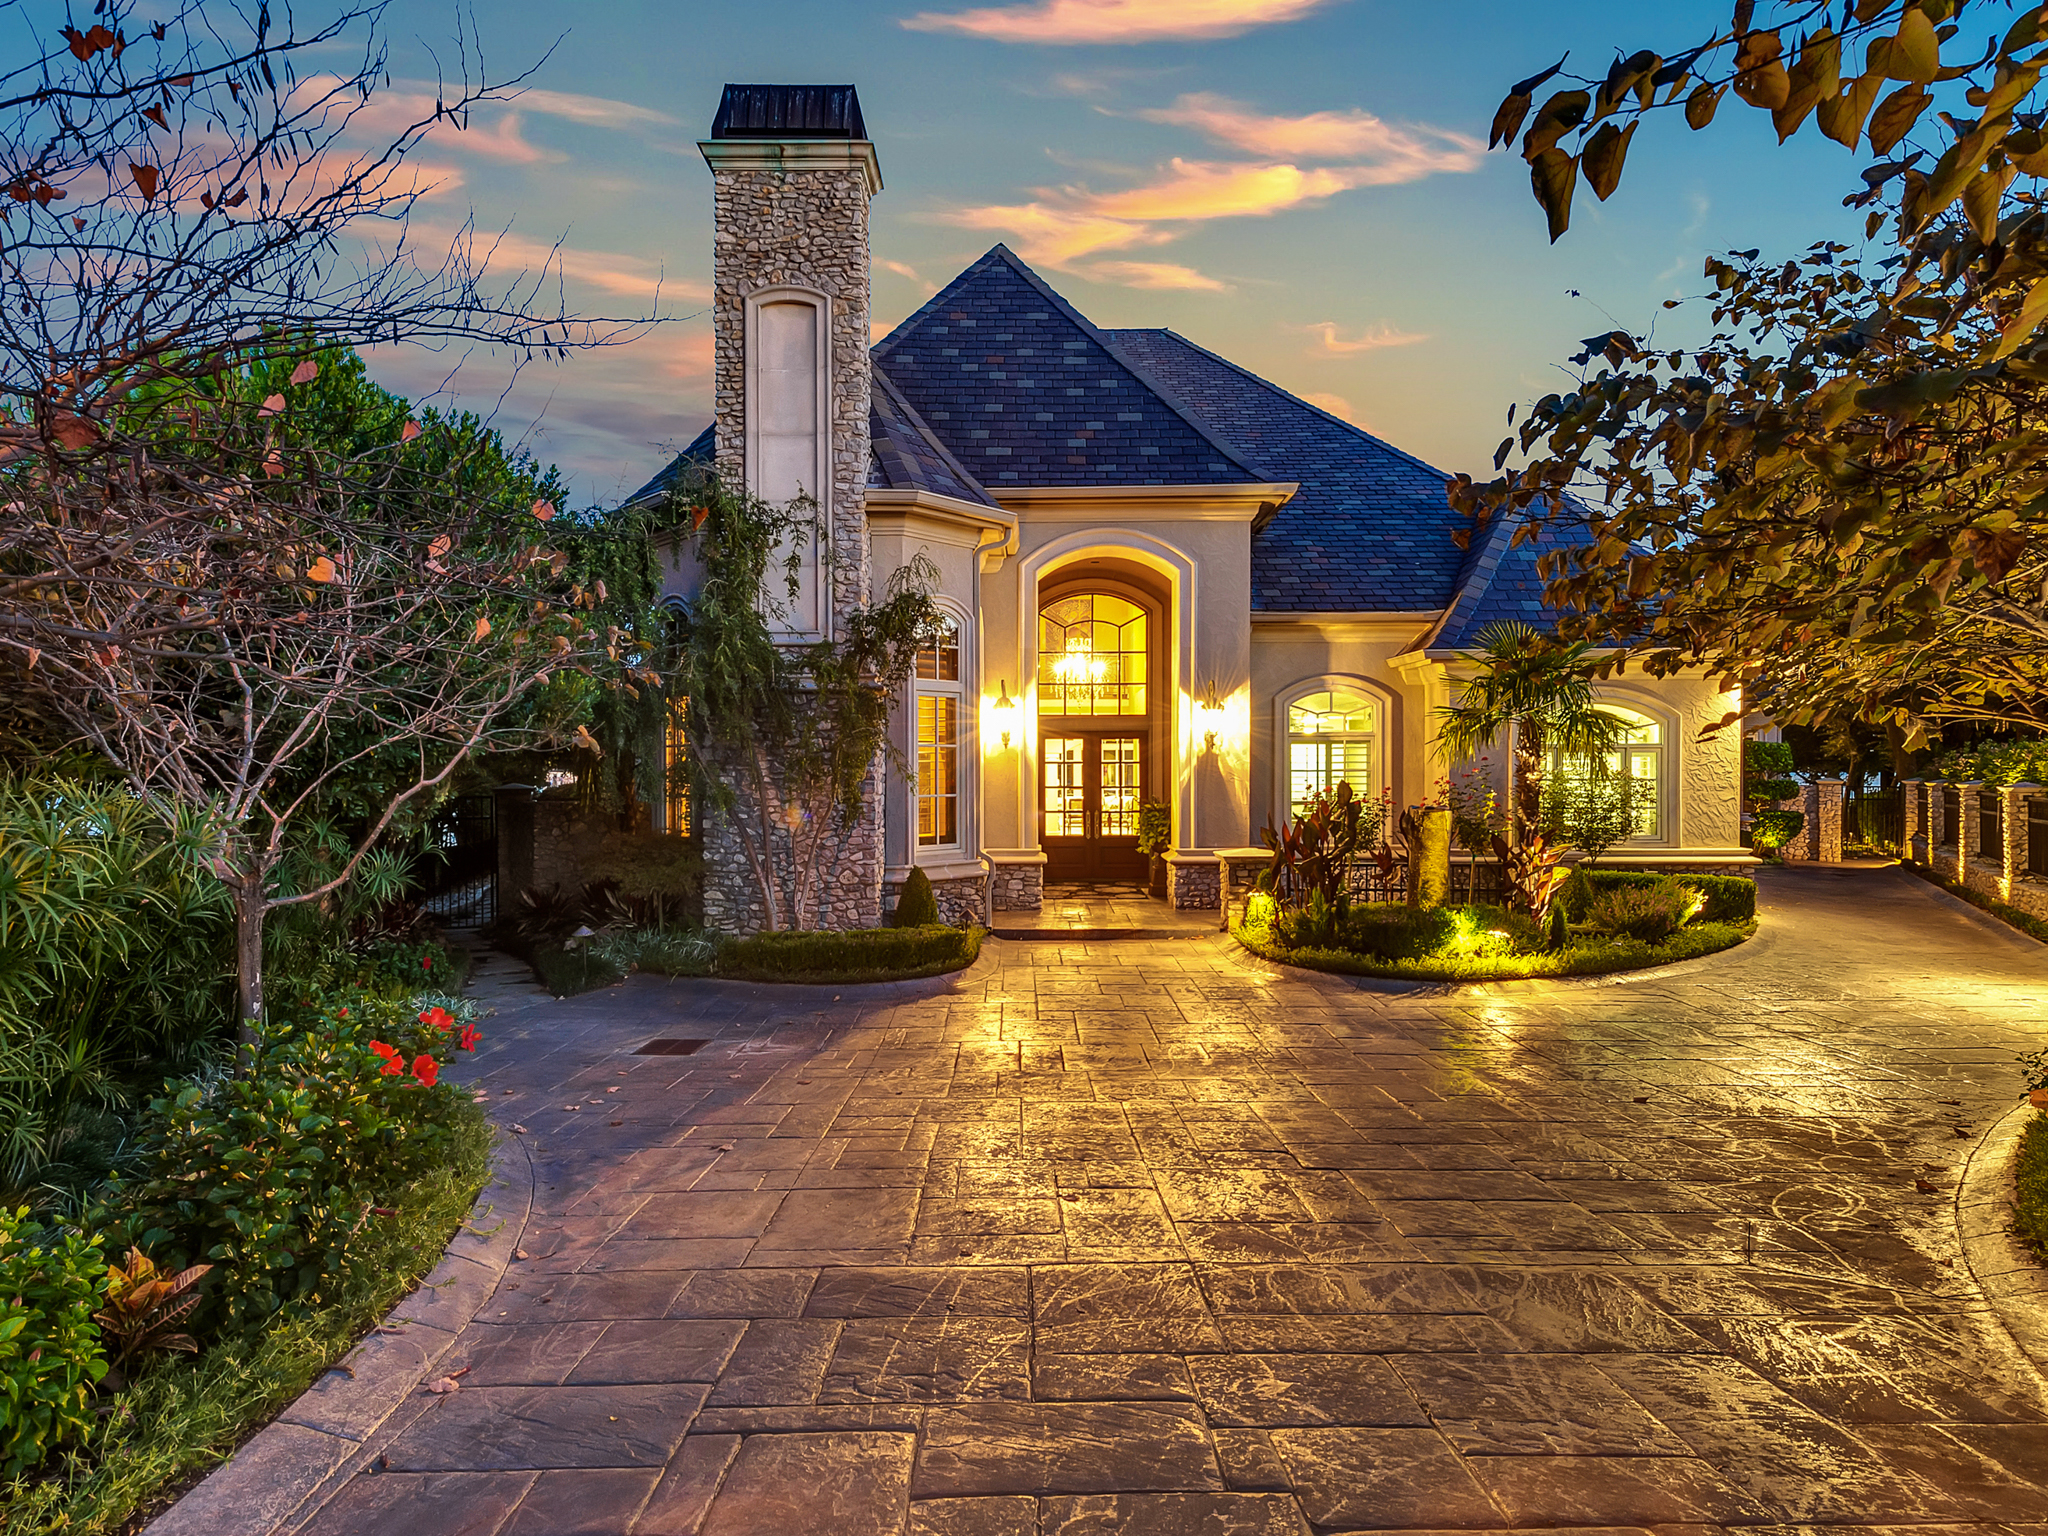 獨棟家庭住宅 為 出售 在 Luxury Waterfront Home on Eagle Mountain Lake 8900 Crest Ridge Drive Fort Worth, 德克薩斯州, 76179 美國